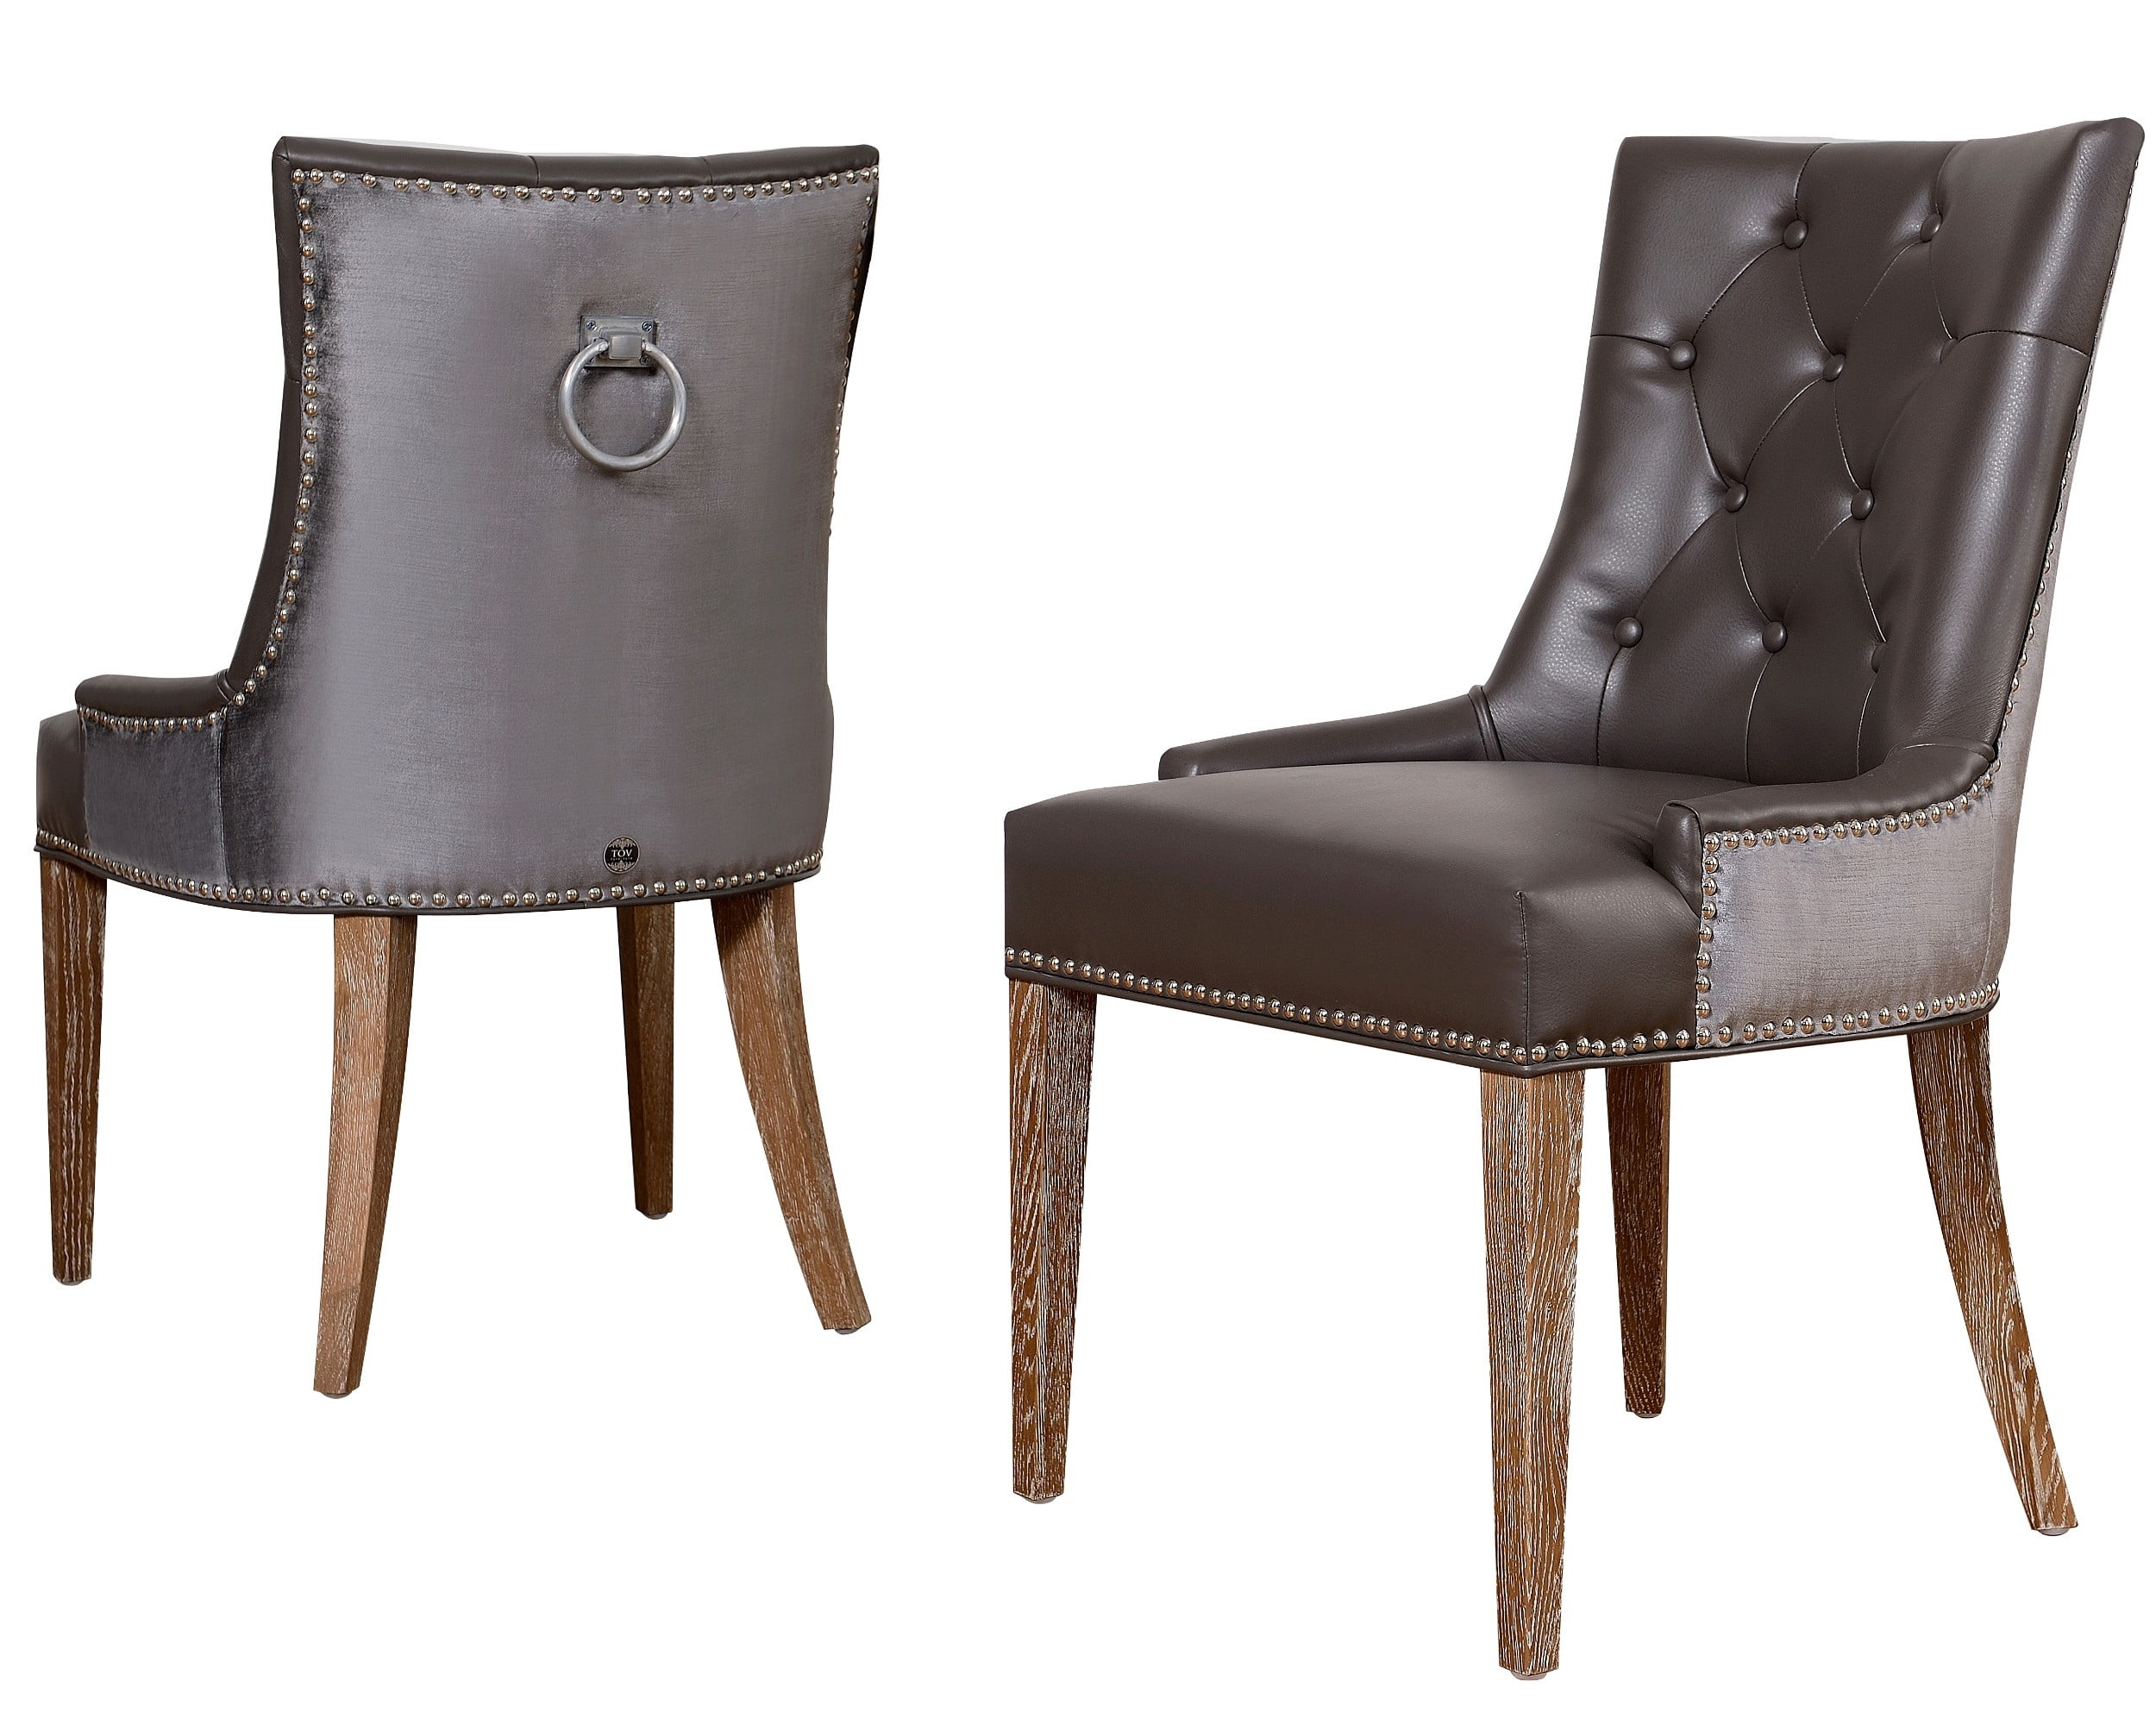 Dining Room Chairs Leather Uptown Leather Velvet Dining Chair Set Of 2 From Tov Upt